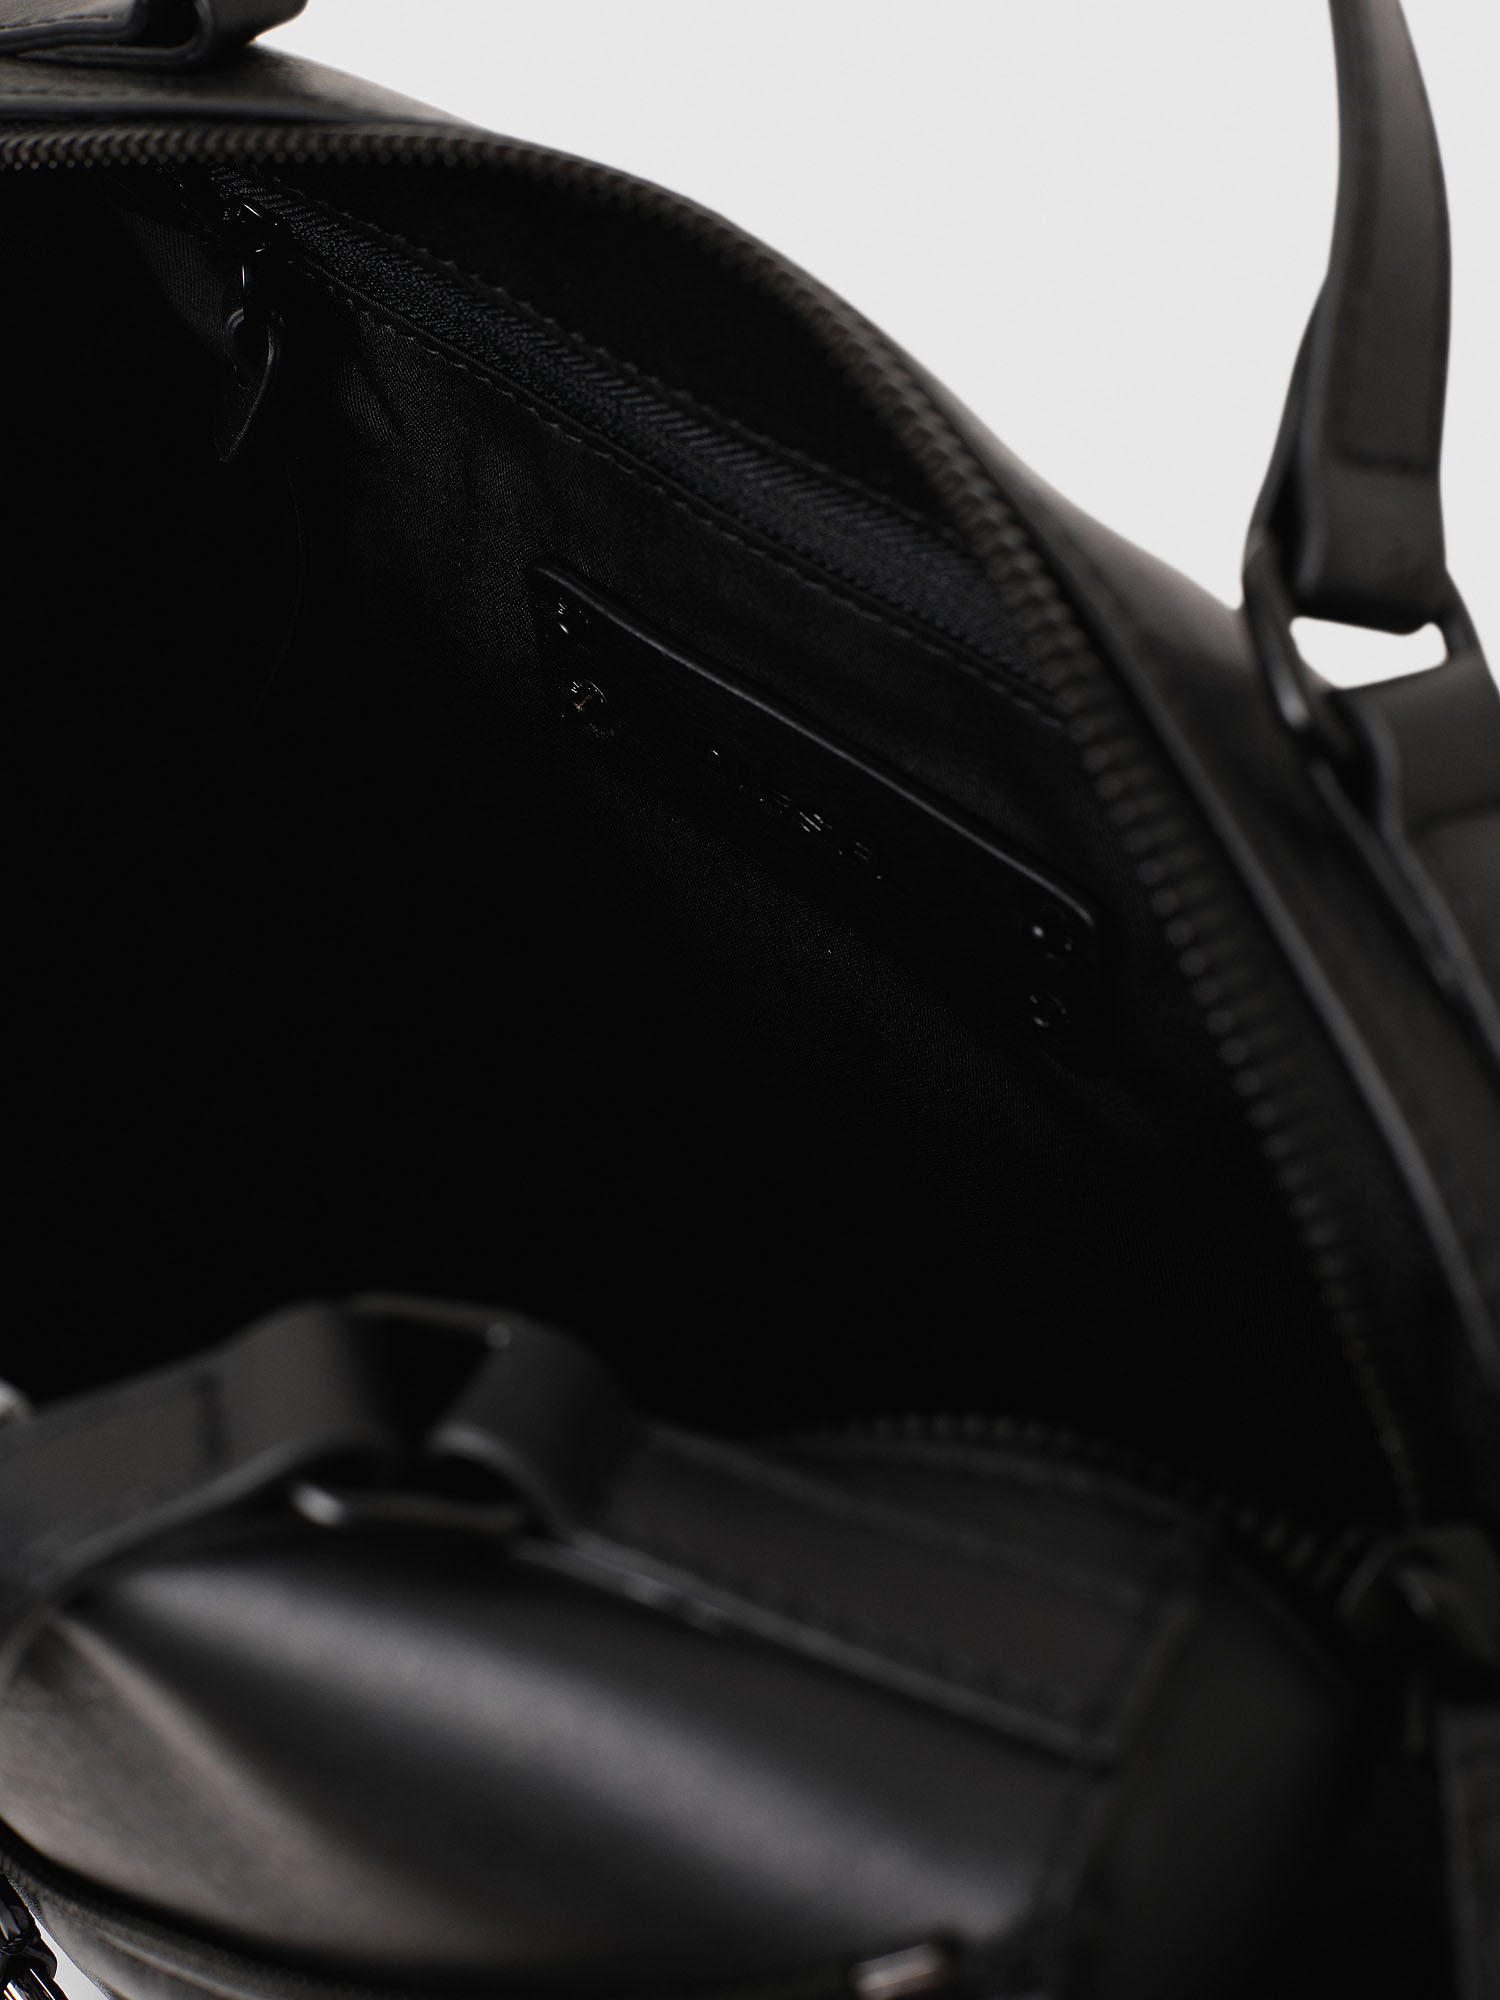 Diesel - LE-ZIPPER SATCHEL,  - Satchels and Handbags - Image 4